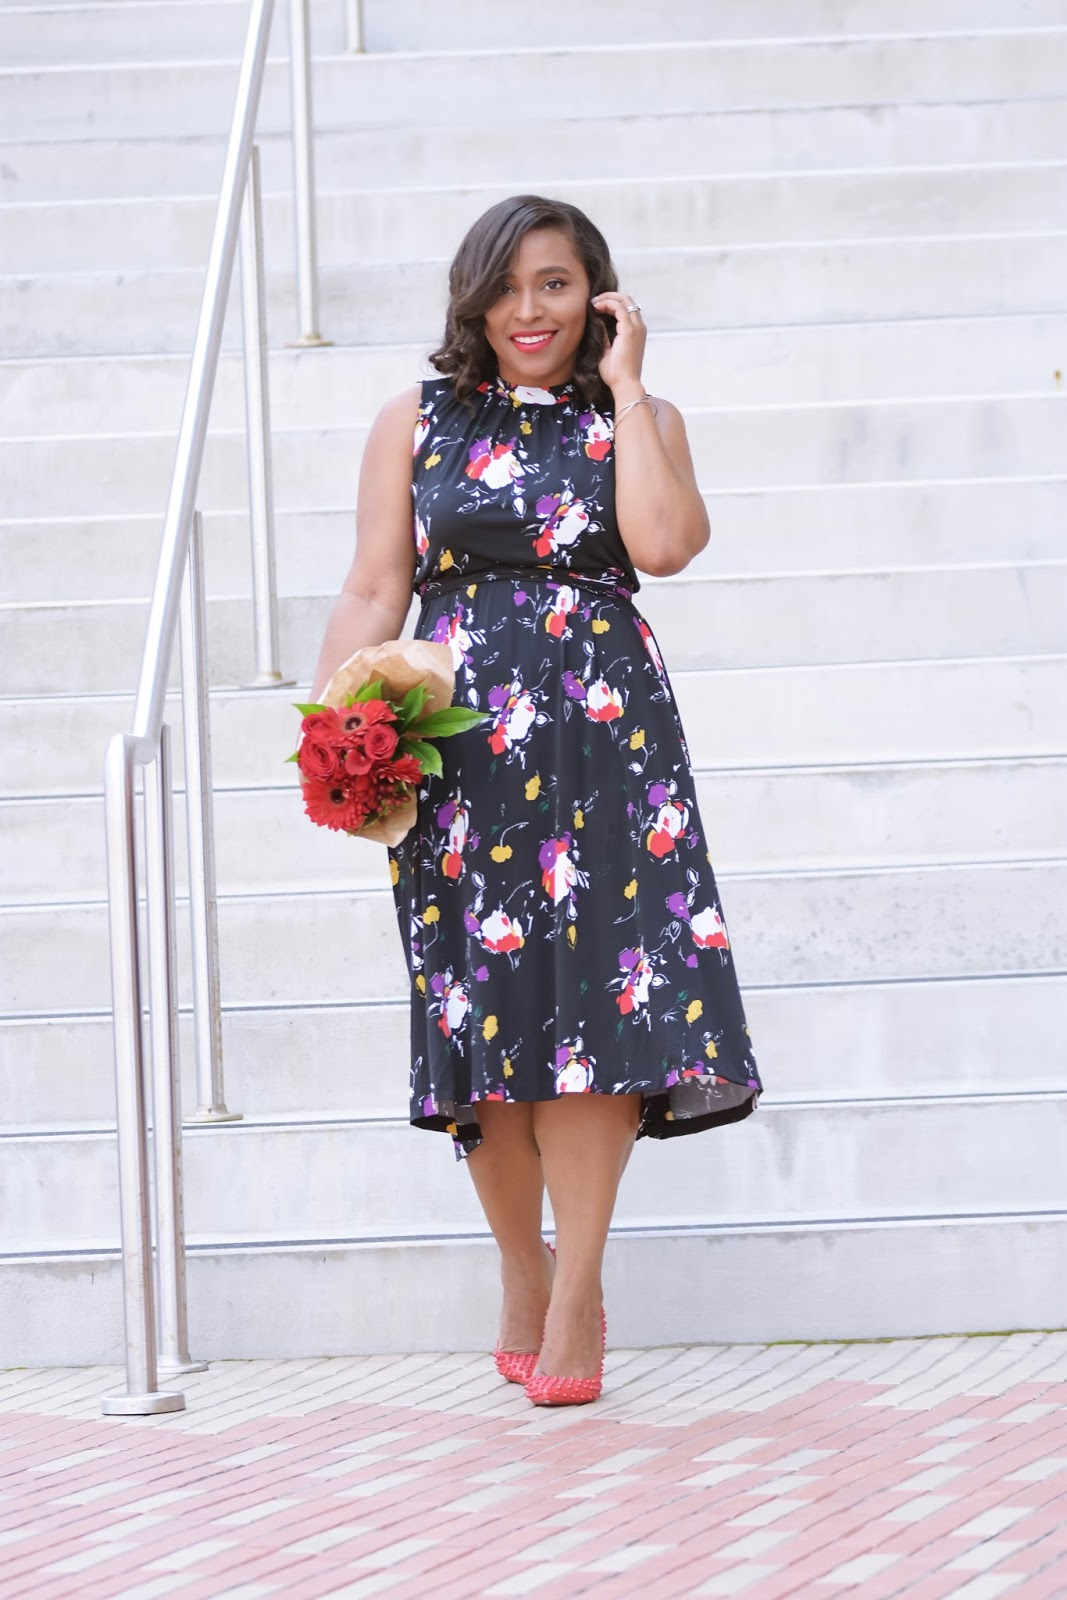 Leota dress, New York, floral dress, wrinkle free fabric, twril, wrap dress, shift dress, dc blogger, dominican blogger, fall dresses, leota, versatile dress, The Versatile Dress Your Wardrobe Is Missing